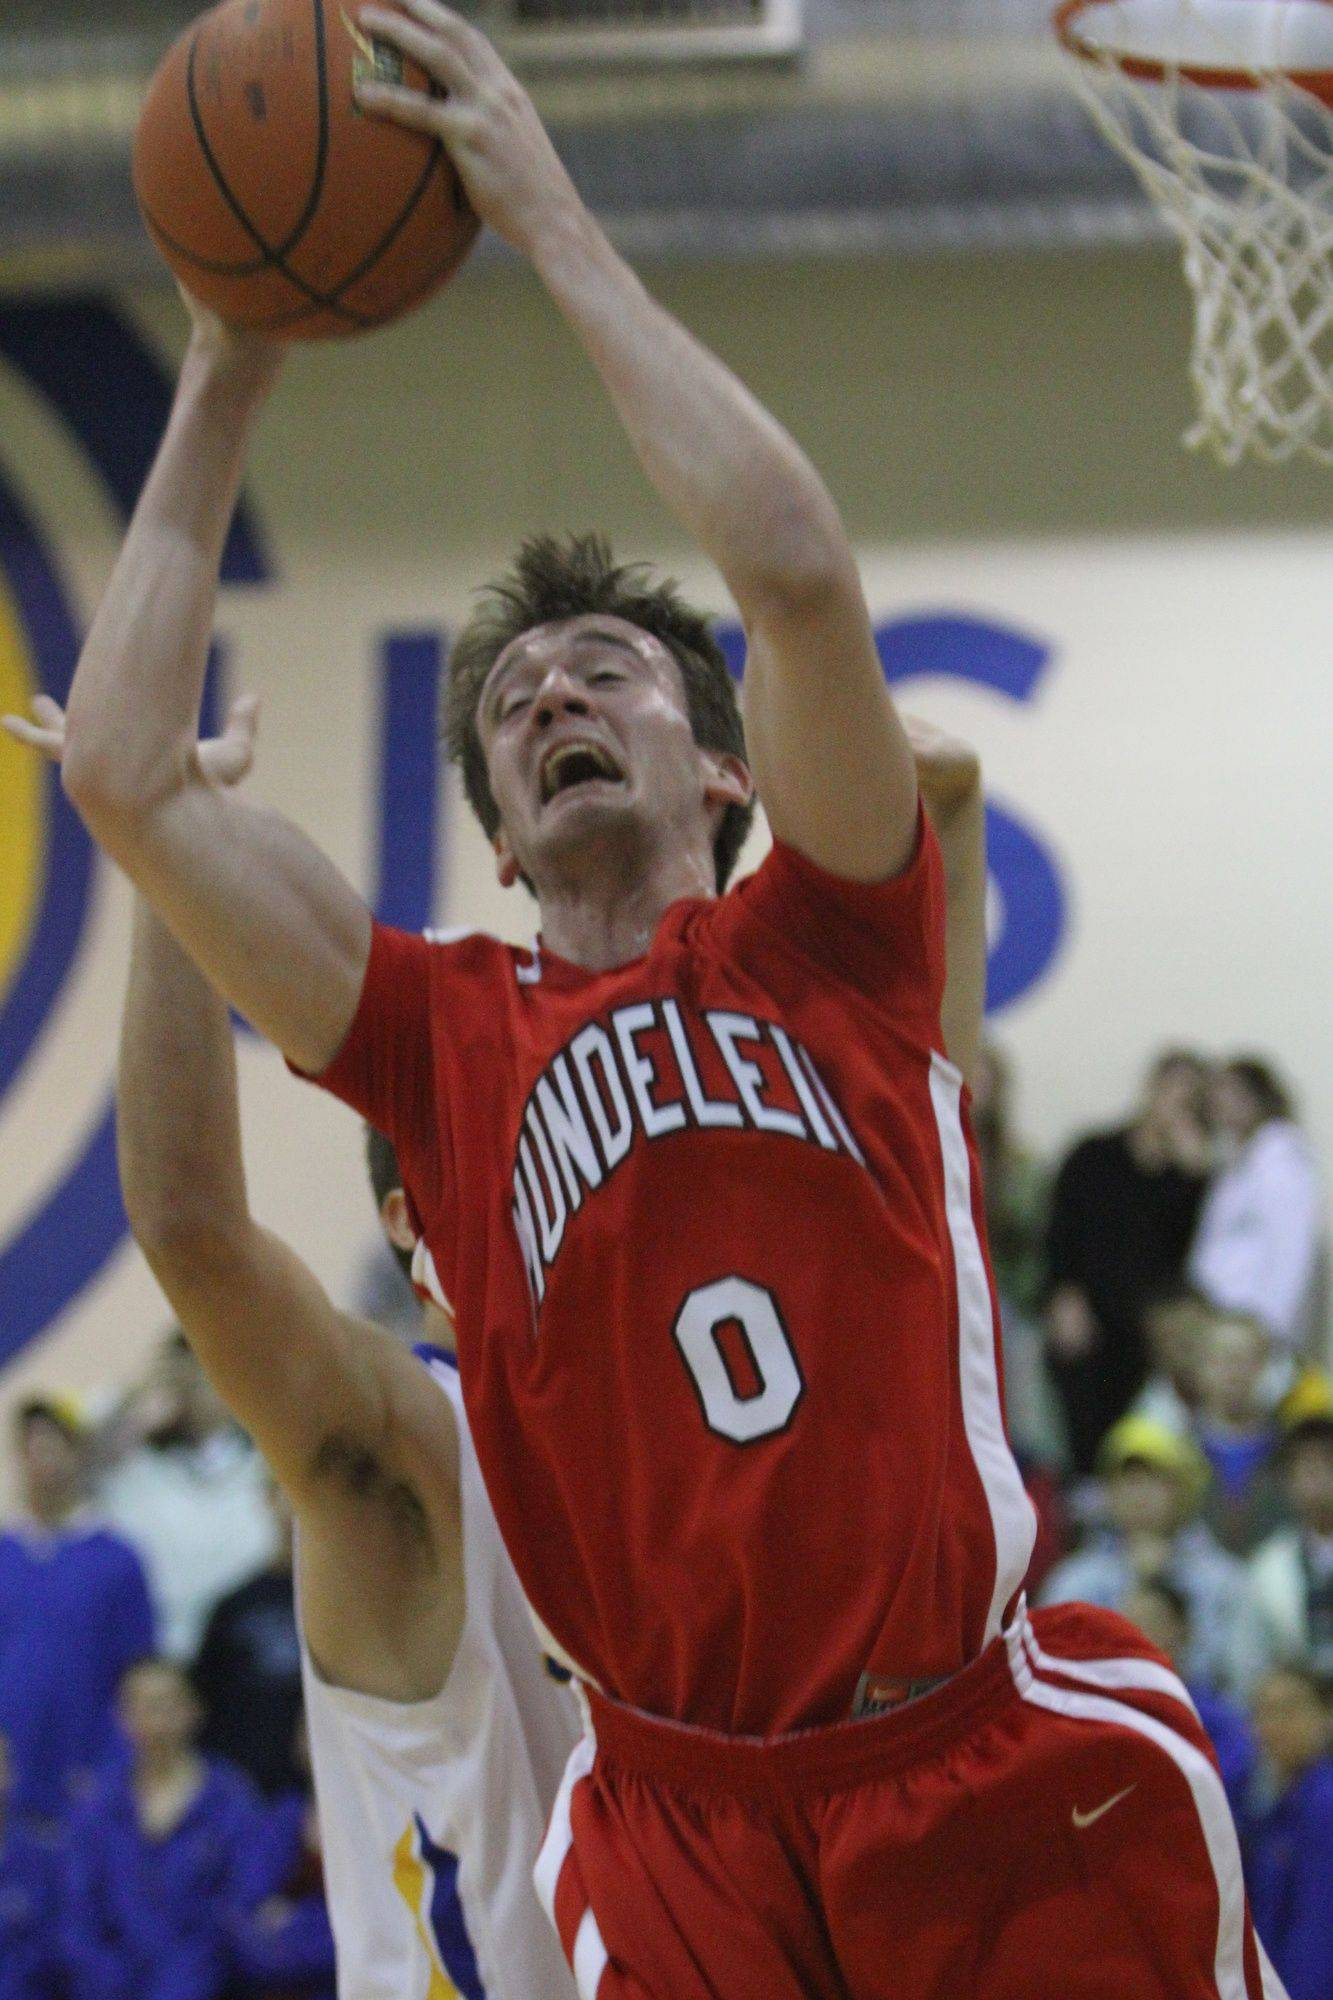 Evansville-bound Ryan Sawvell has Mundelein looking to make a big postseason splash.